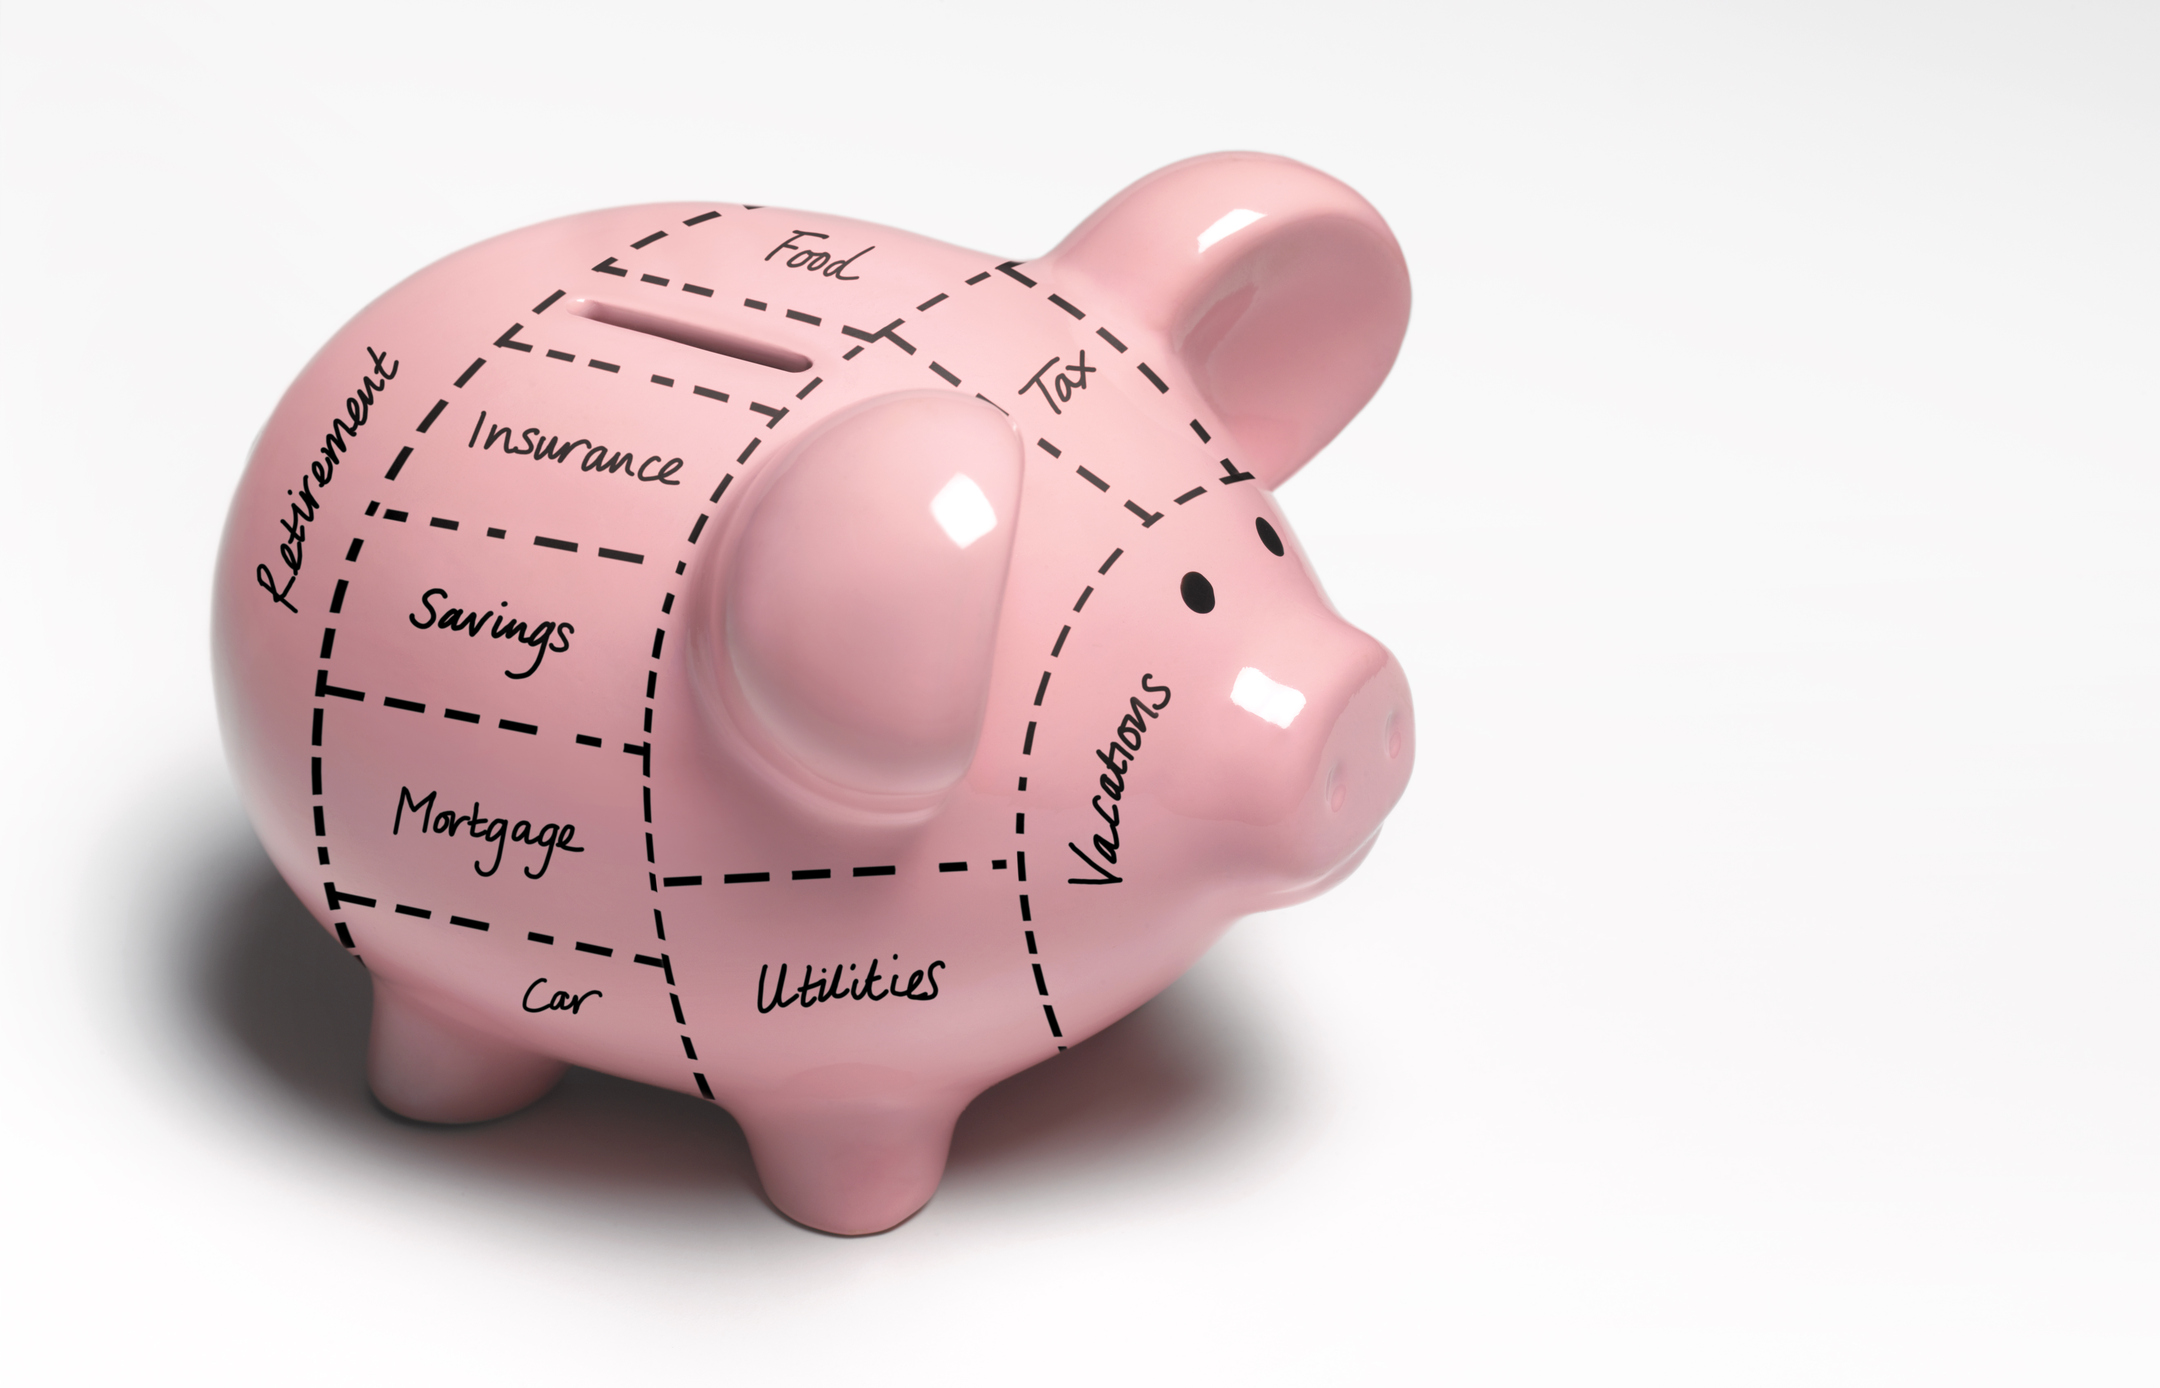 Personal Finance Strategies: Building a Savings Account